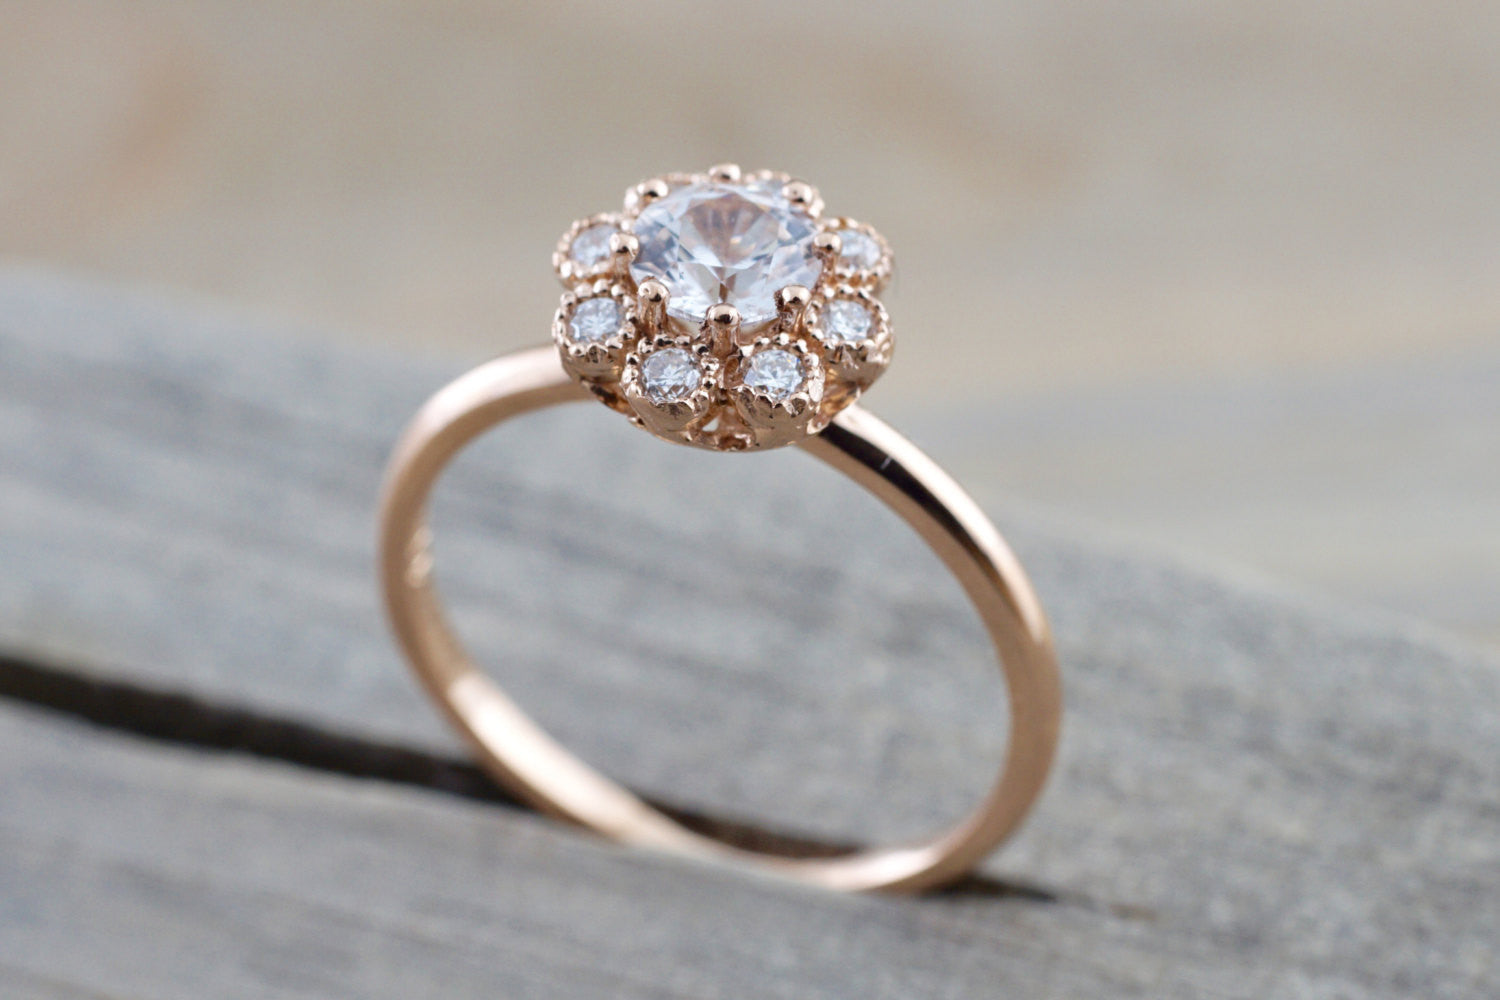 14k Rose Gold Round White Sapphire Diamond Halo Engagement Ring Band Floral Flower - Brilliant Facets